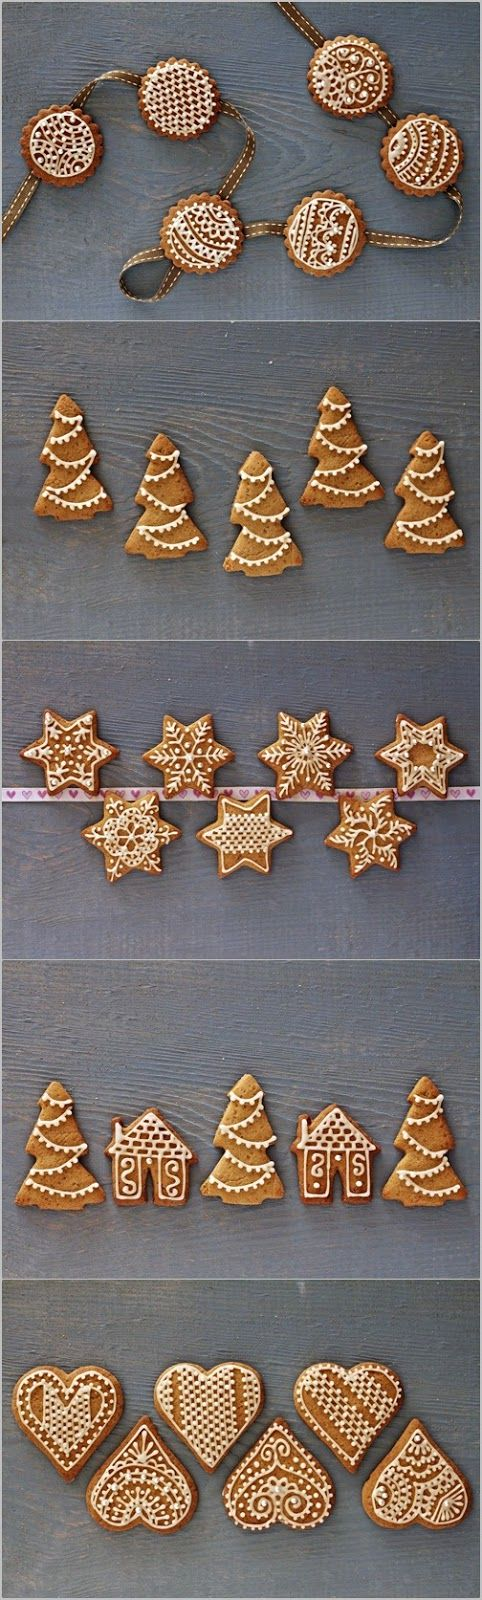 gingerbread cookies with recipe